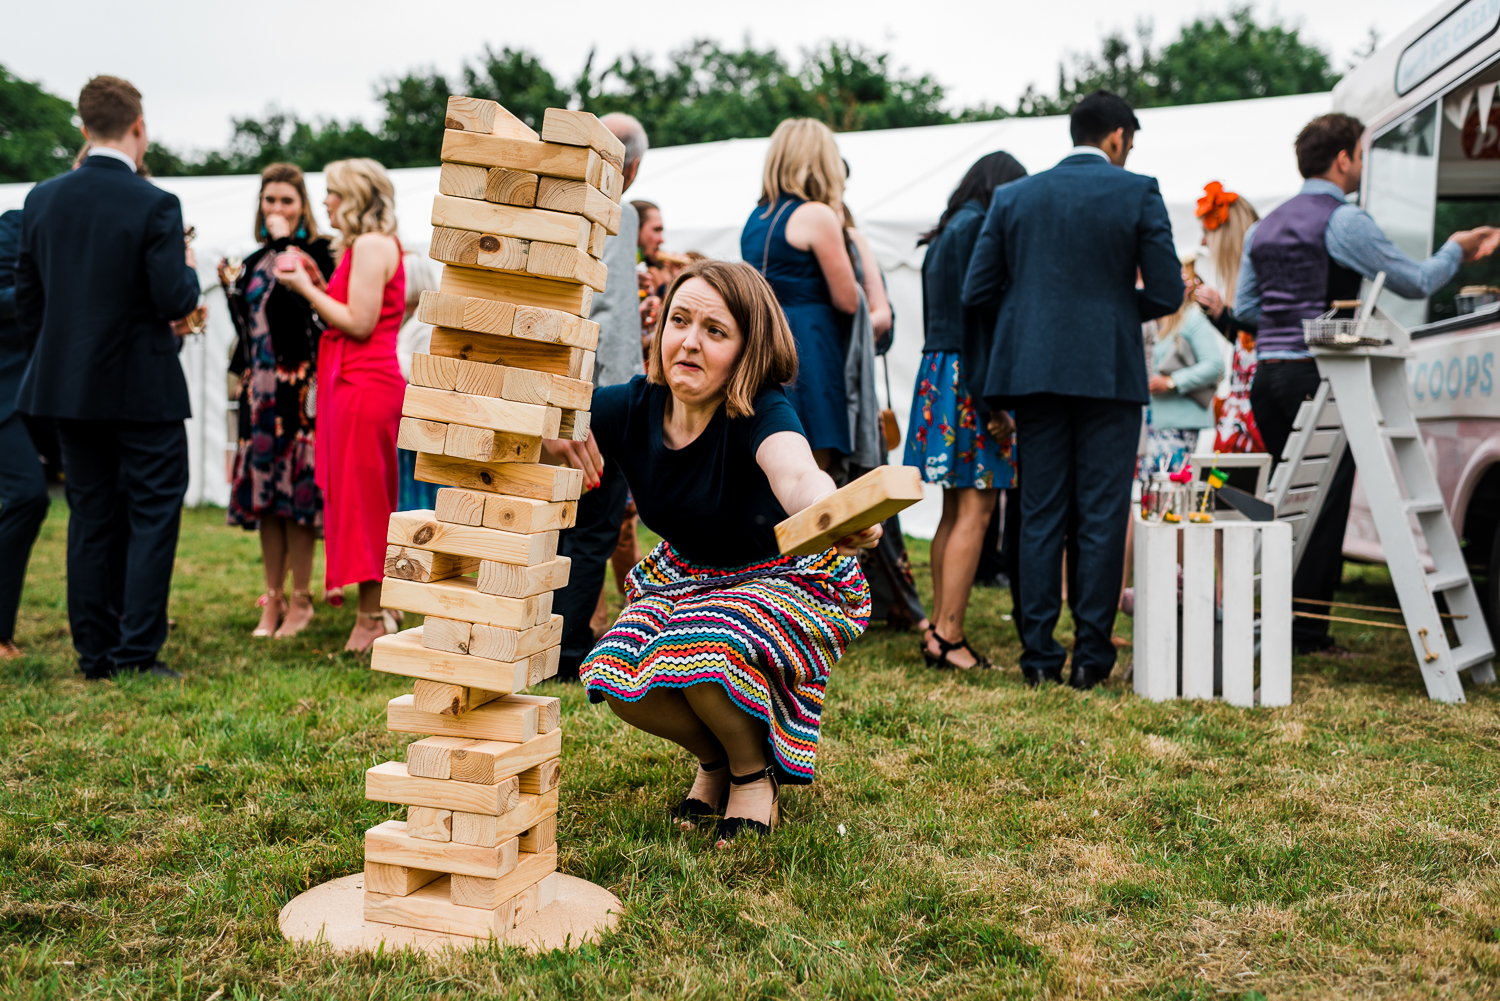 Garden games on the lawn at a festival-themed wedding